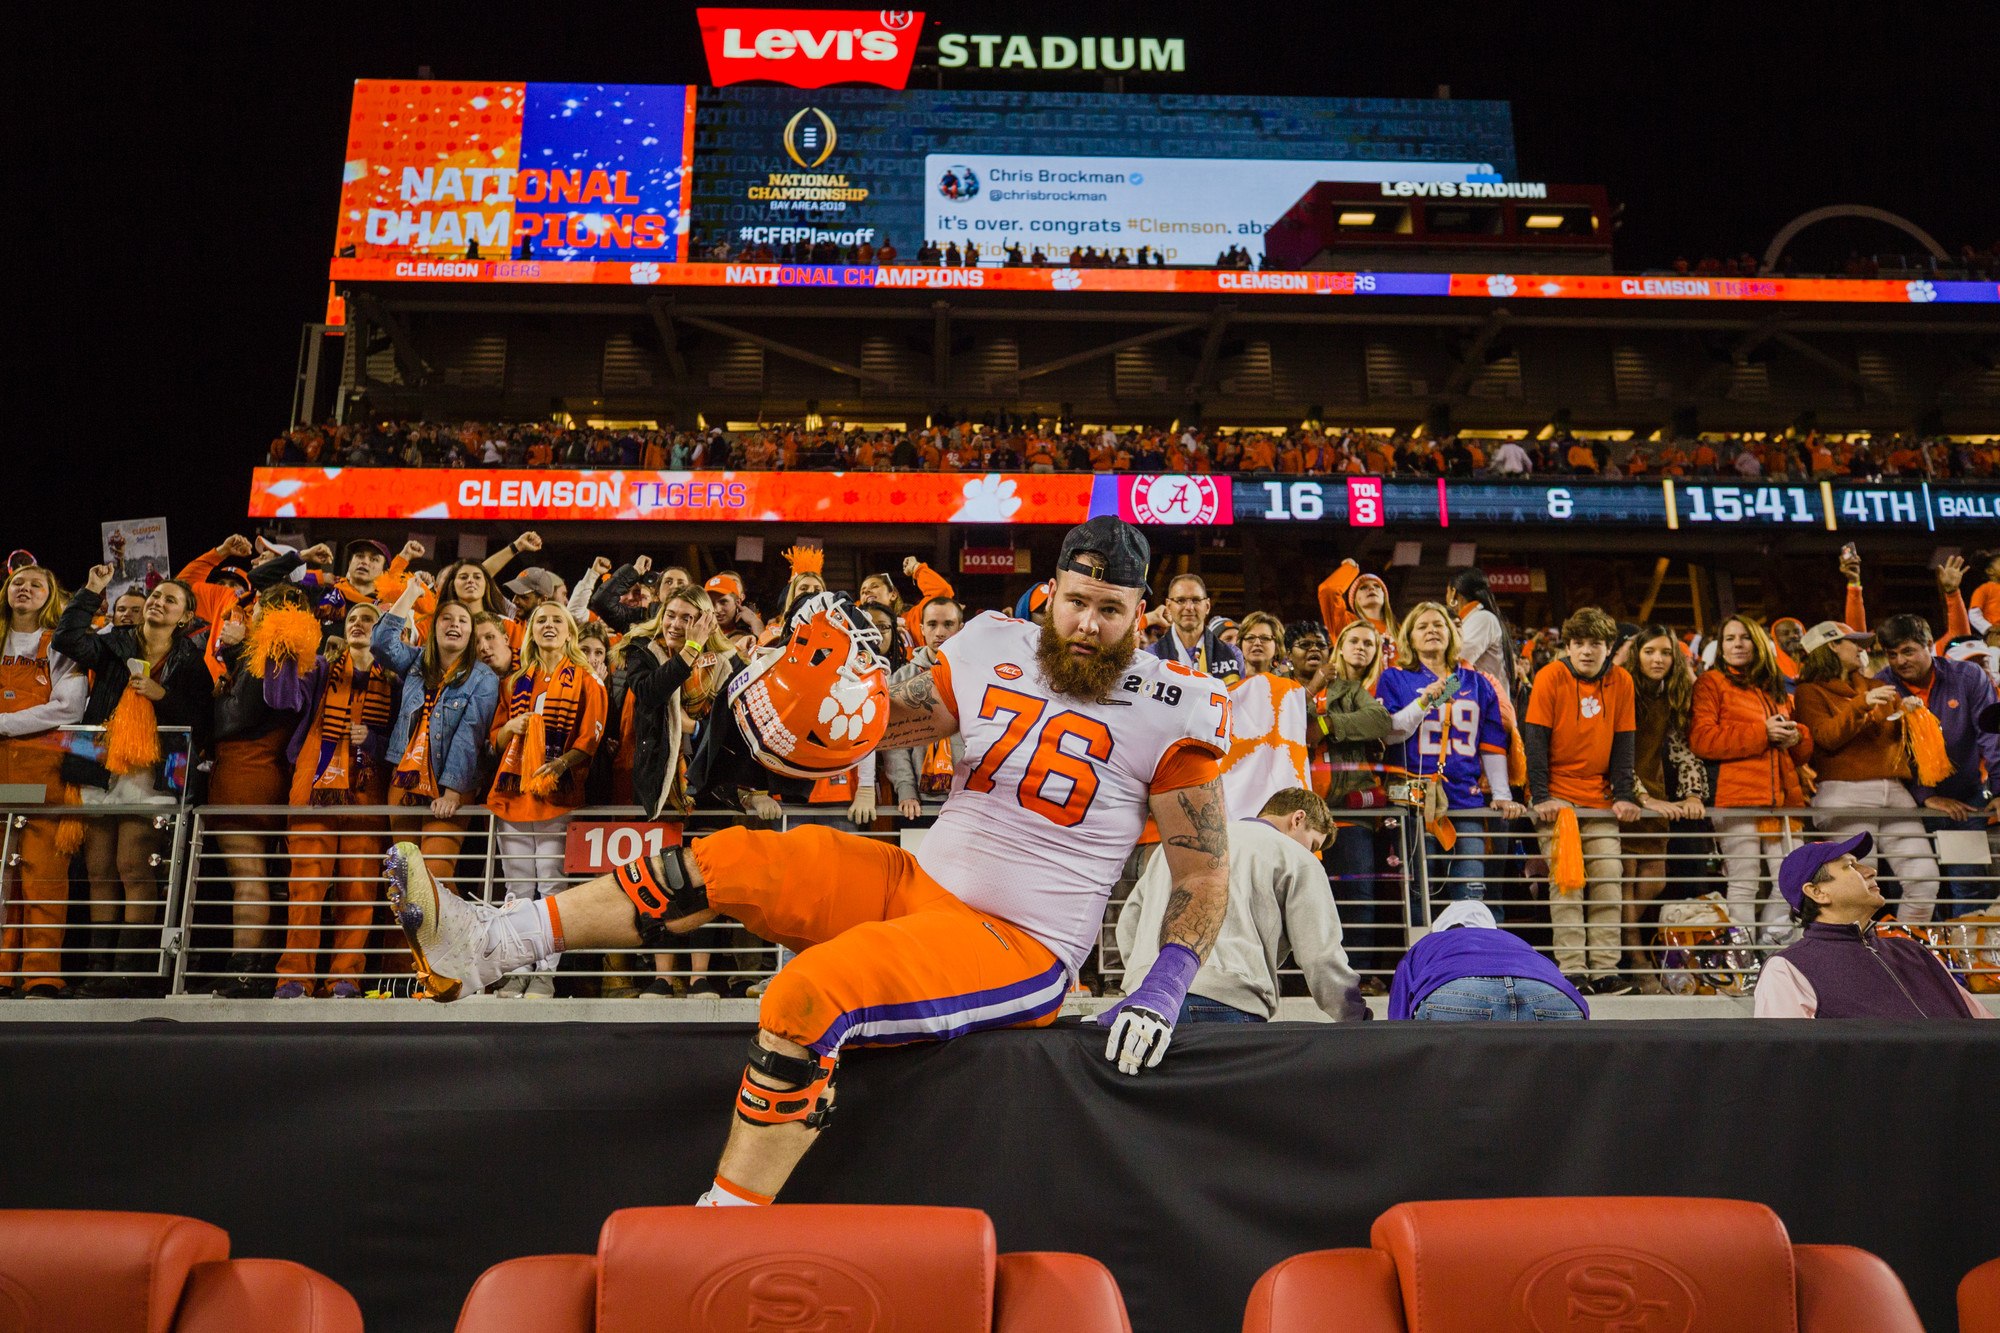 Clemson offensive lineman Sean Pollard celebrates at Levi's Stadium in Santa Clara, California, on Monday, Jan. 7 after routing Alabama 44-16 to win the 2019 CFP National Championship.